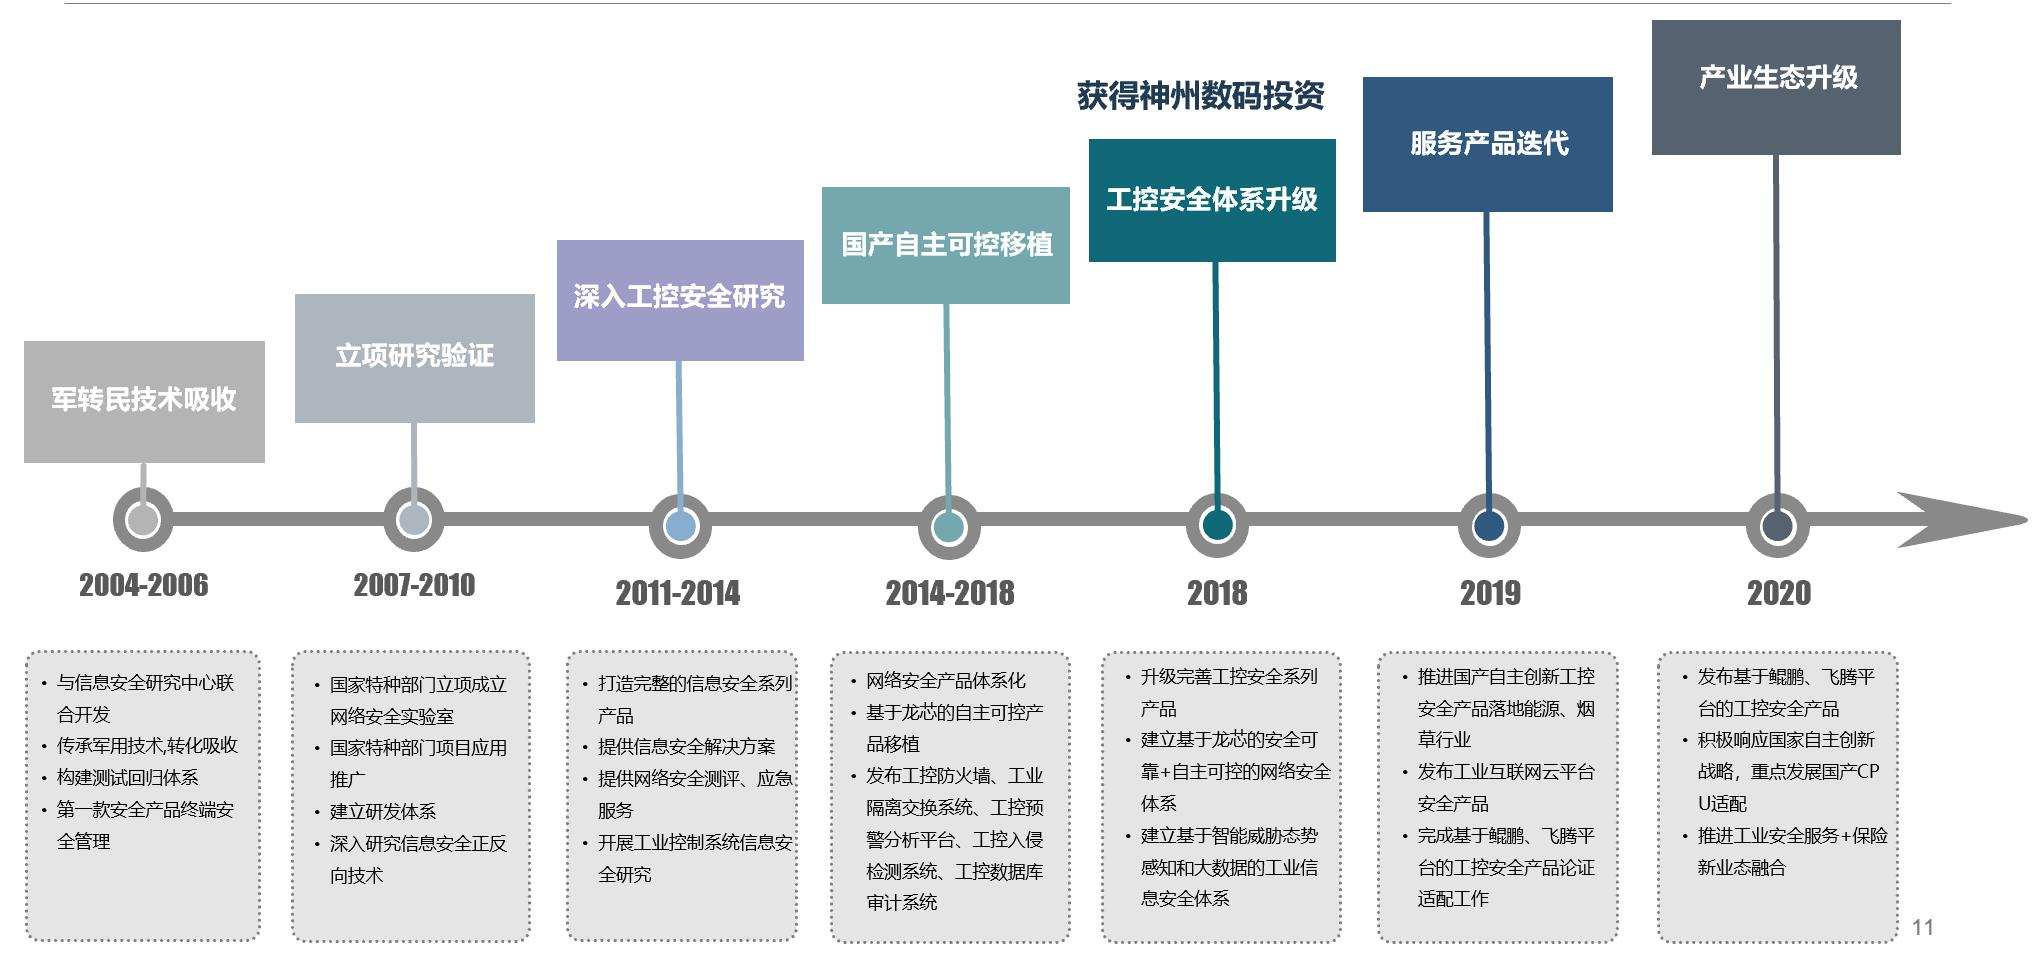 """36Kr First Release丨Industrial Control Security Solution Provider """"Shenzhou Hui'an"""" received tens of millions of financing, which will strengthen the construction of industrial control safety governance system"""